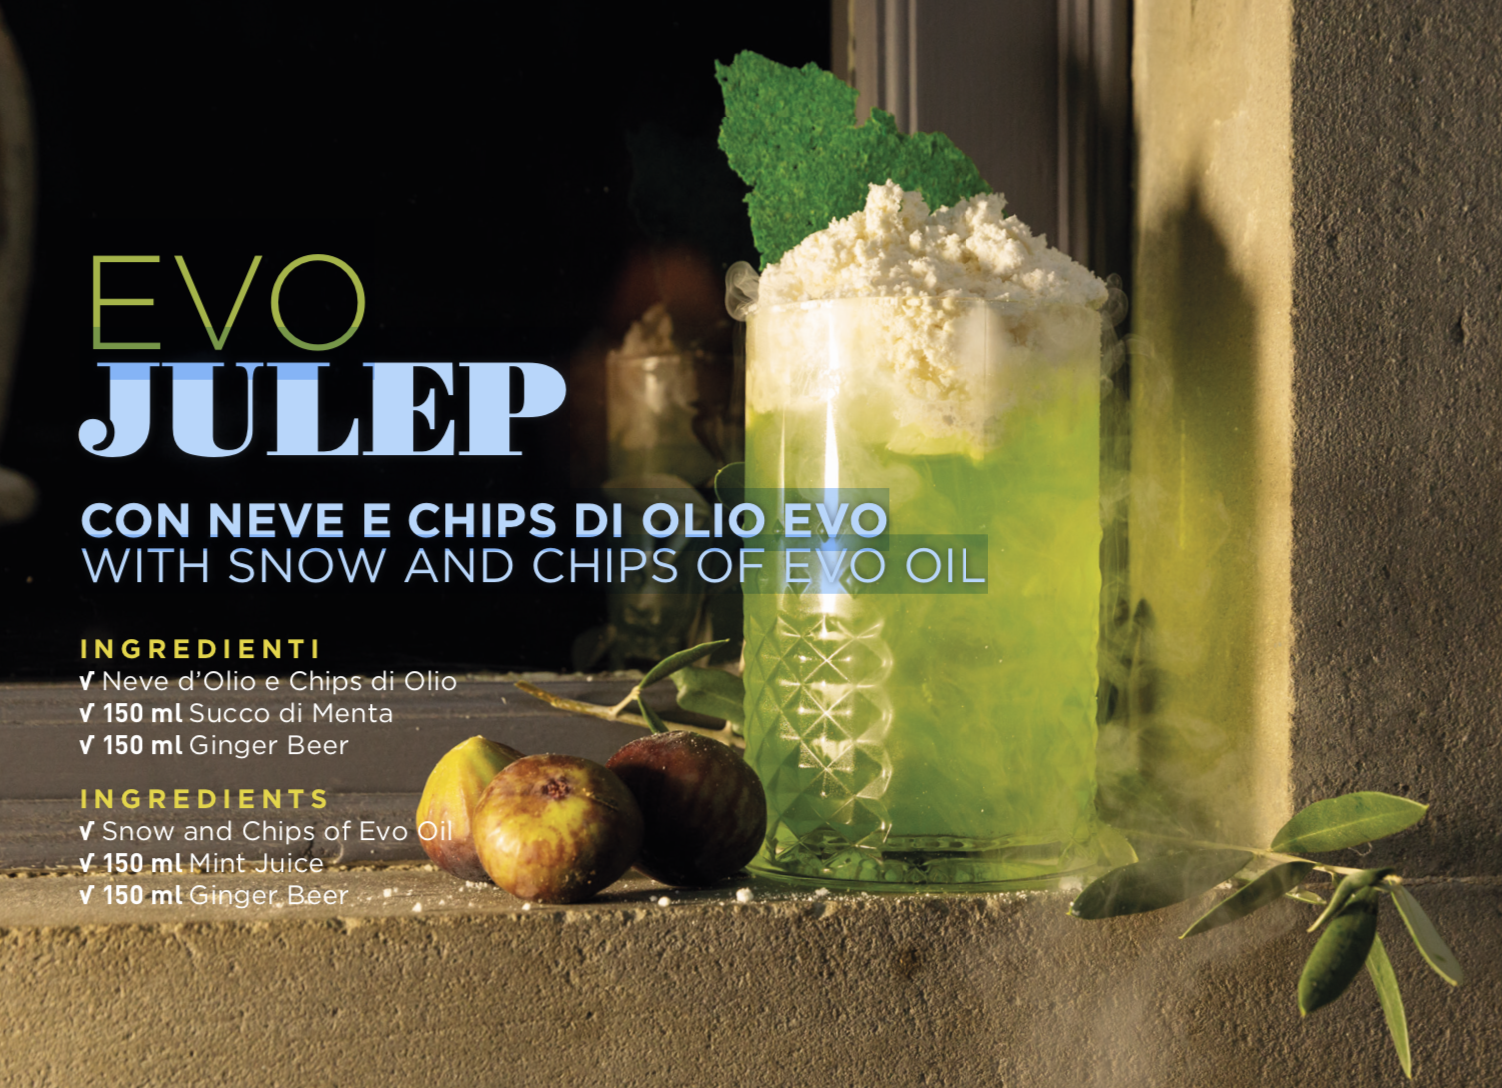 EVO JULEP WITH SNOW AND CHIPS OF EVO OIL